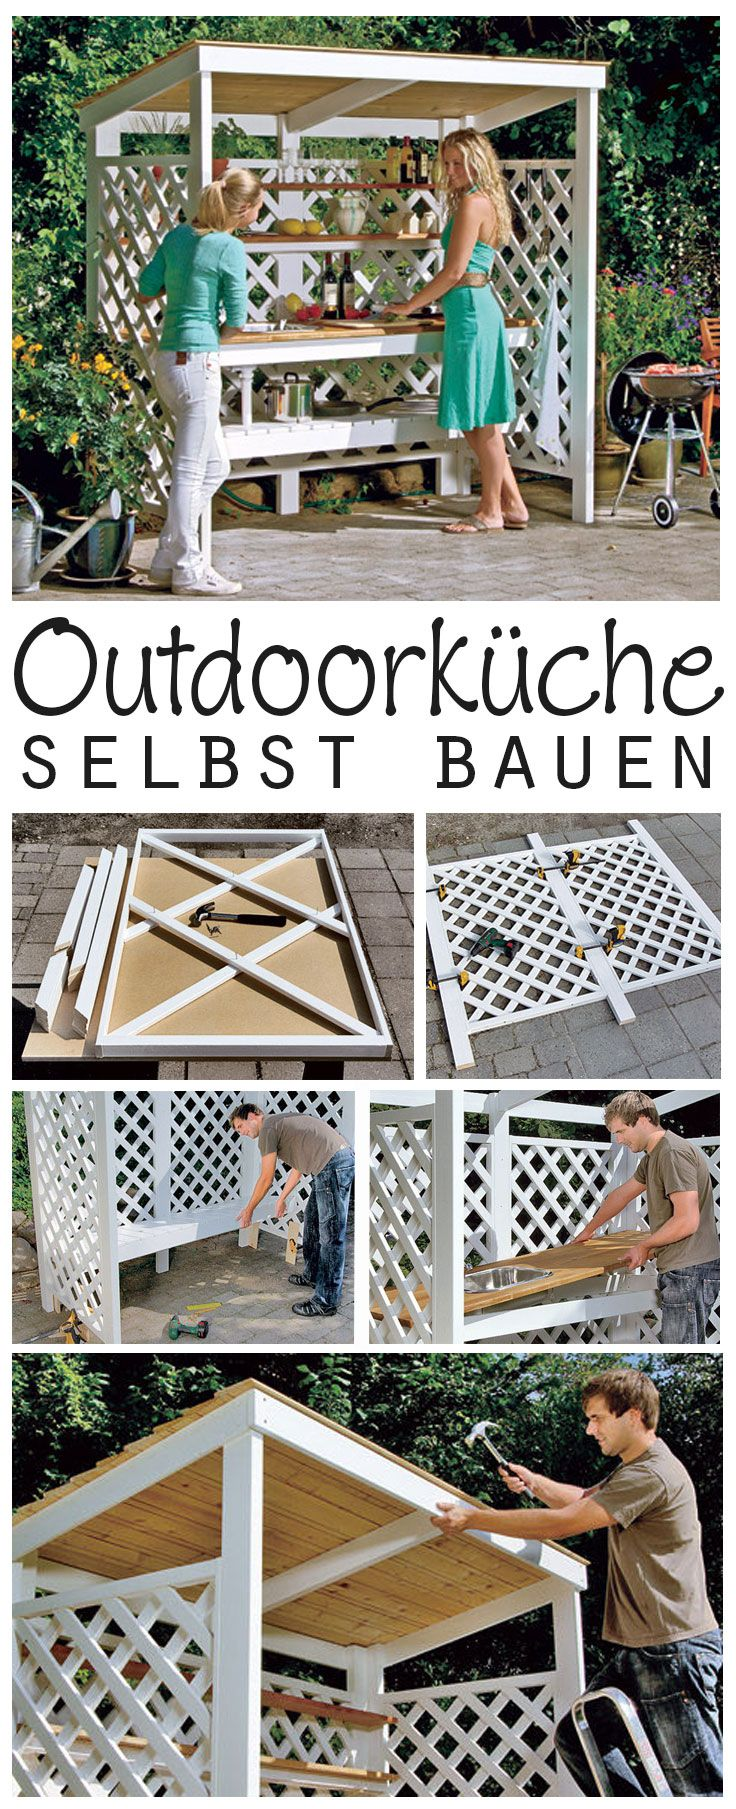 Outdoork che selber bauen garten build outdoor kitchen for Outdoor kitchen selber bauen